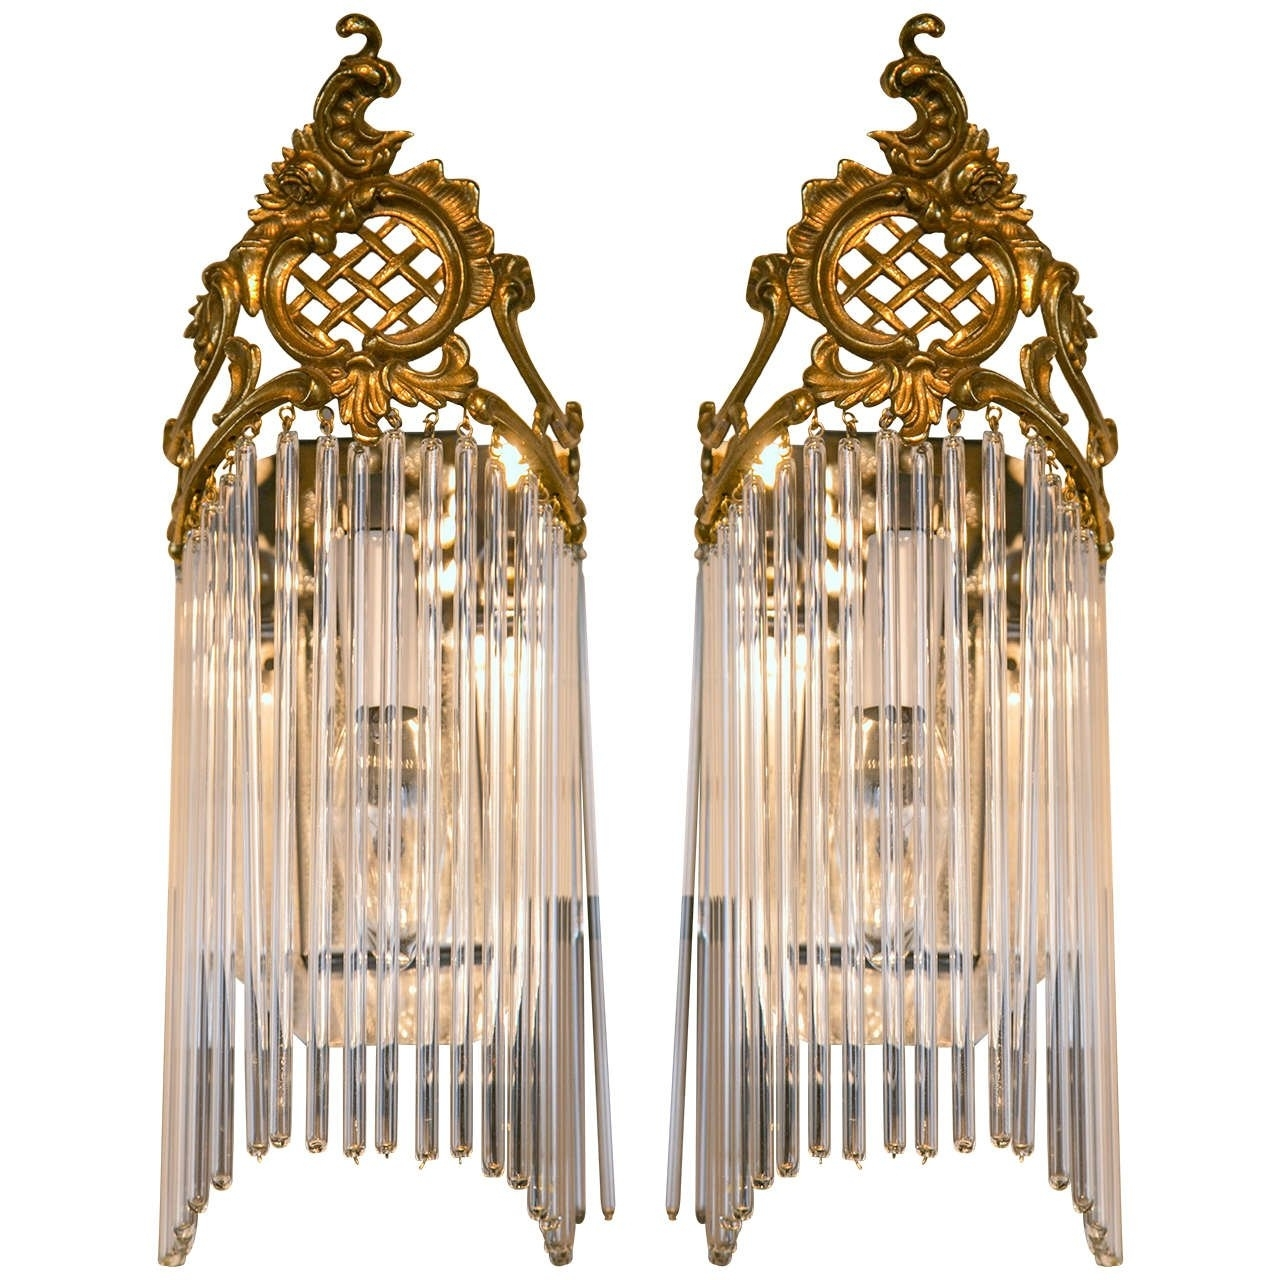 Art Deco Wall Sconces – Prix Dalle Beton Within Most Recently Released Art Deco Wall Sconces (View 10 of 20)